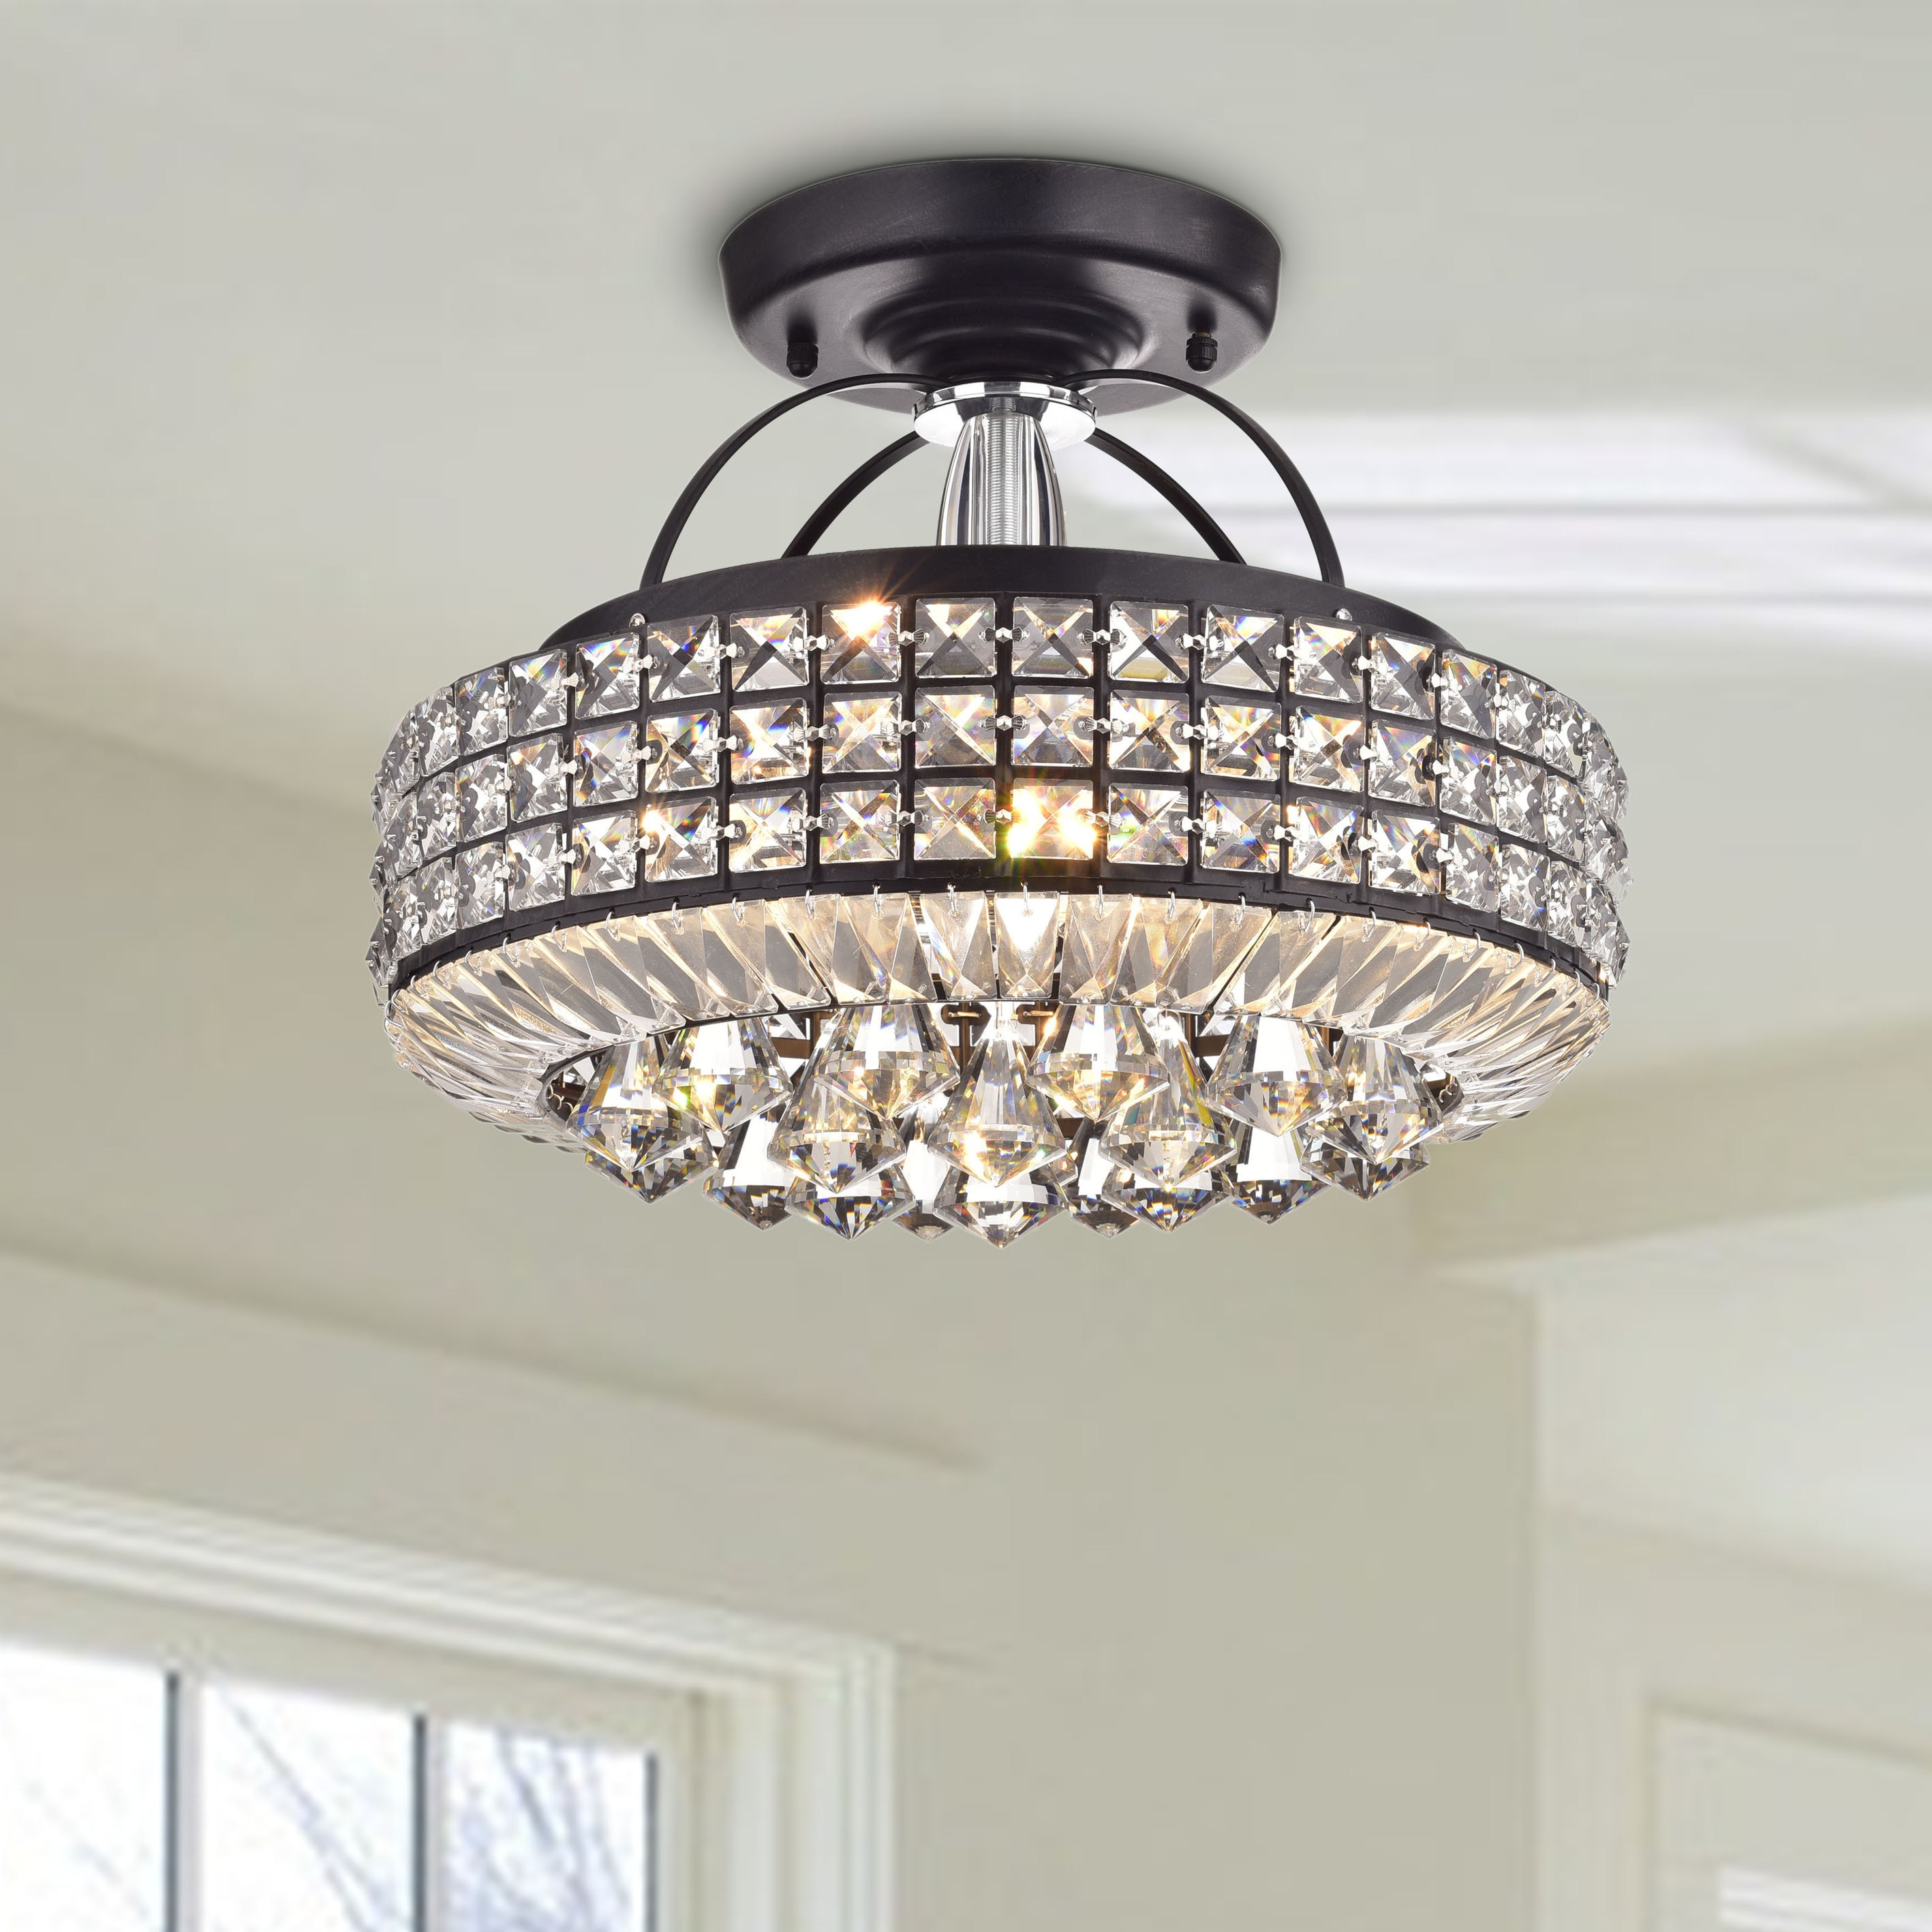 Jolie antique black drum shade crystal semi flush mount chandelier jolie antique black drum shade crystal semi flush mount chandelier free shipping today overstock 17762685 arubaitofo Images